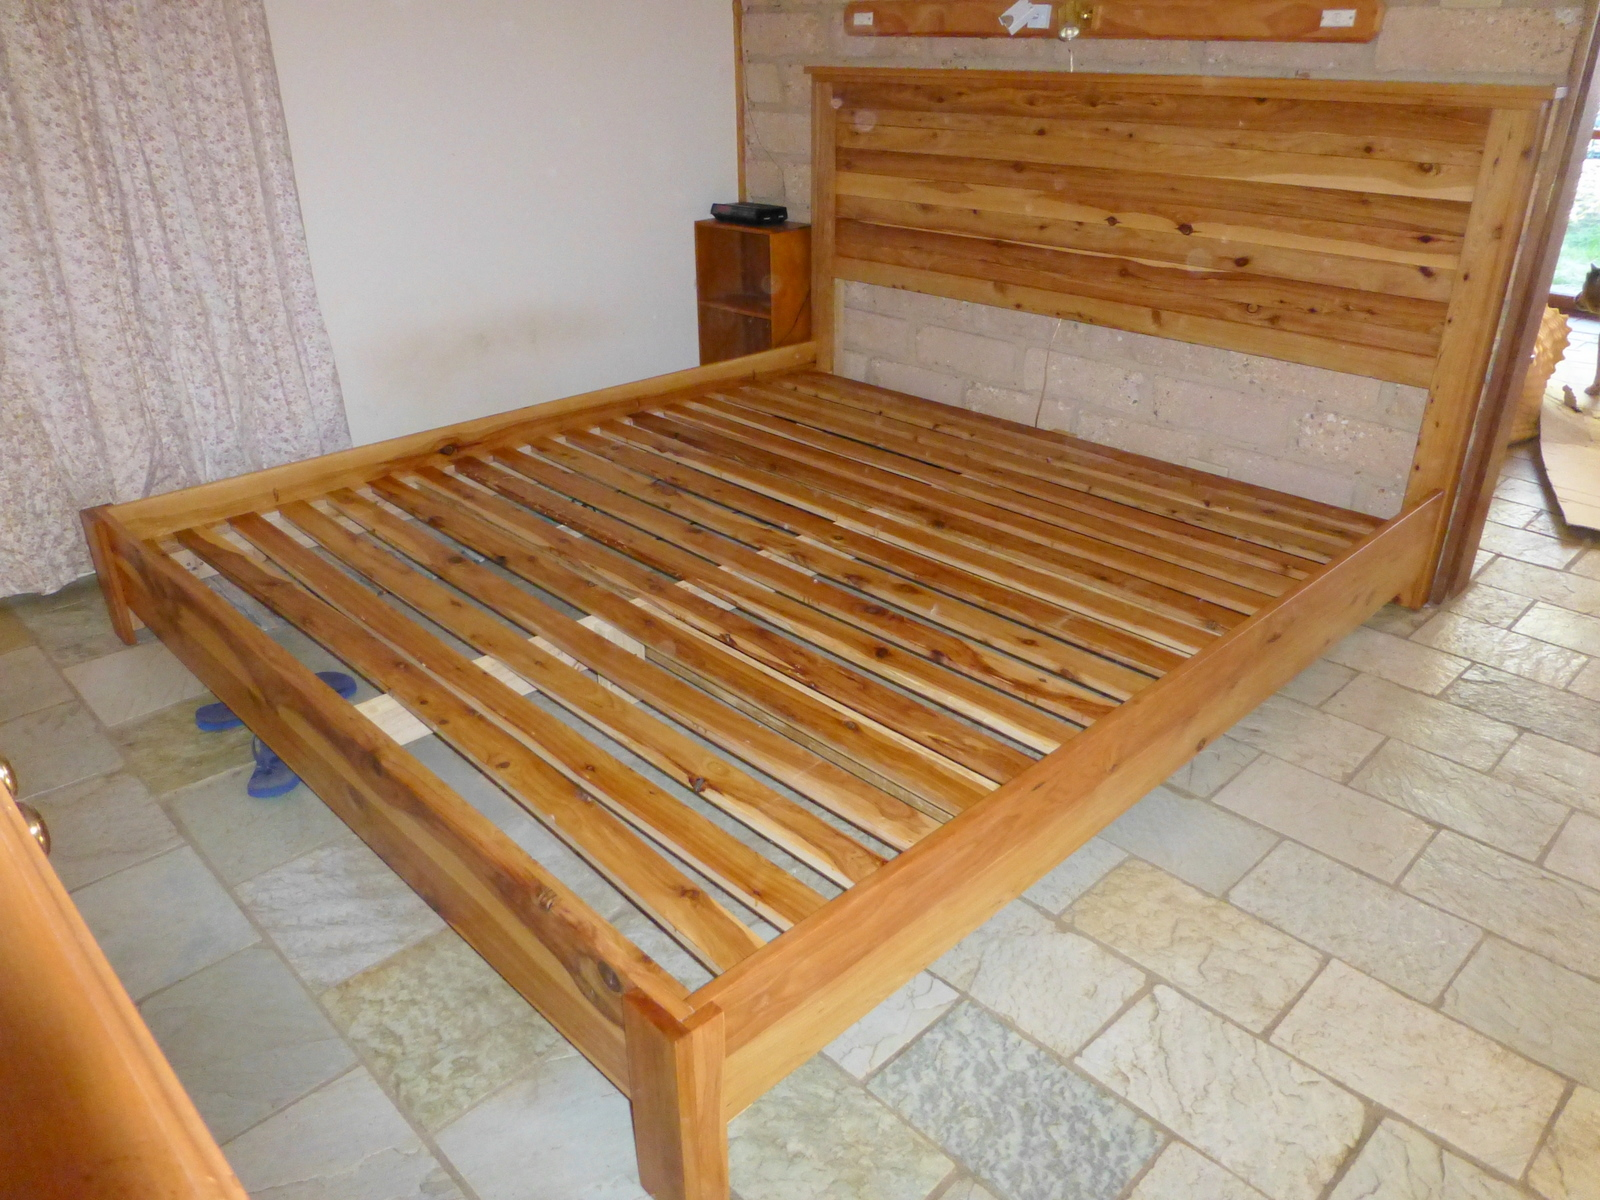 King Size Bed With Reclaimed Headboard